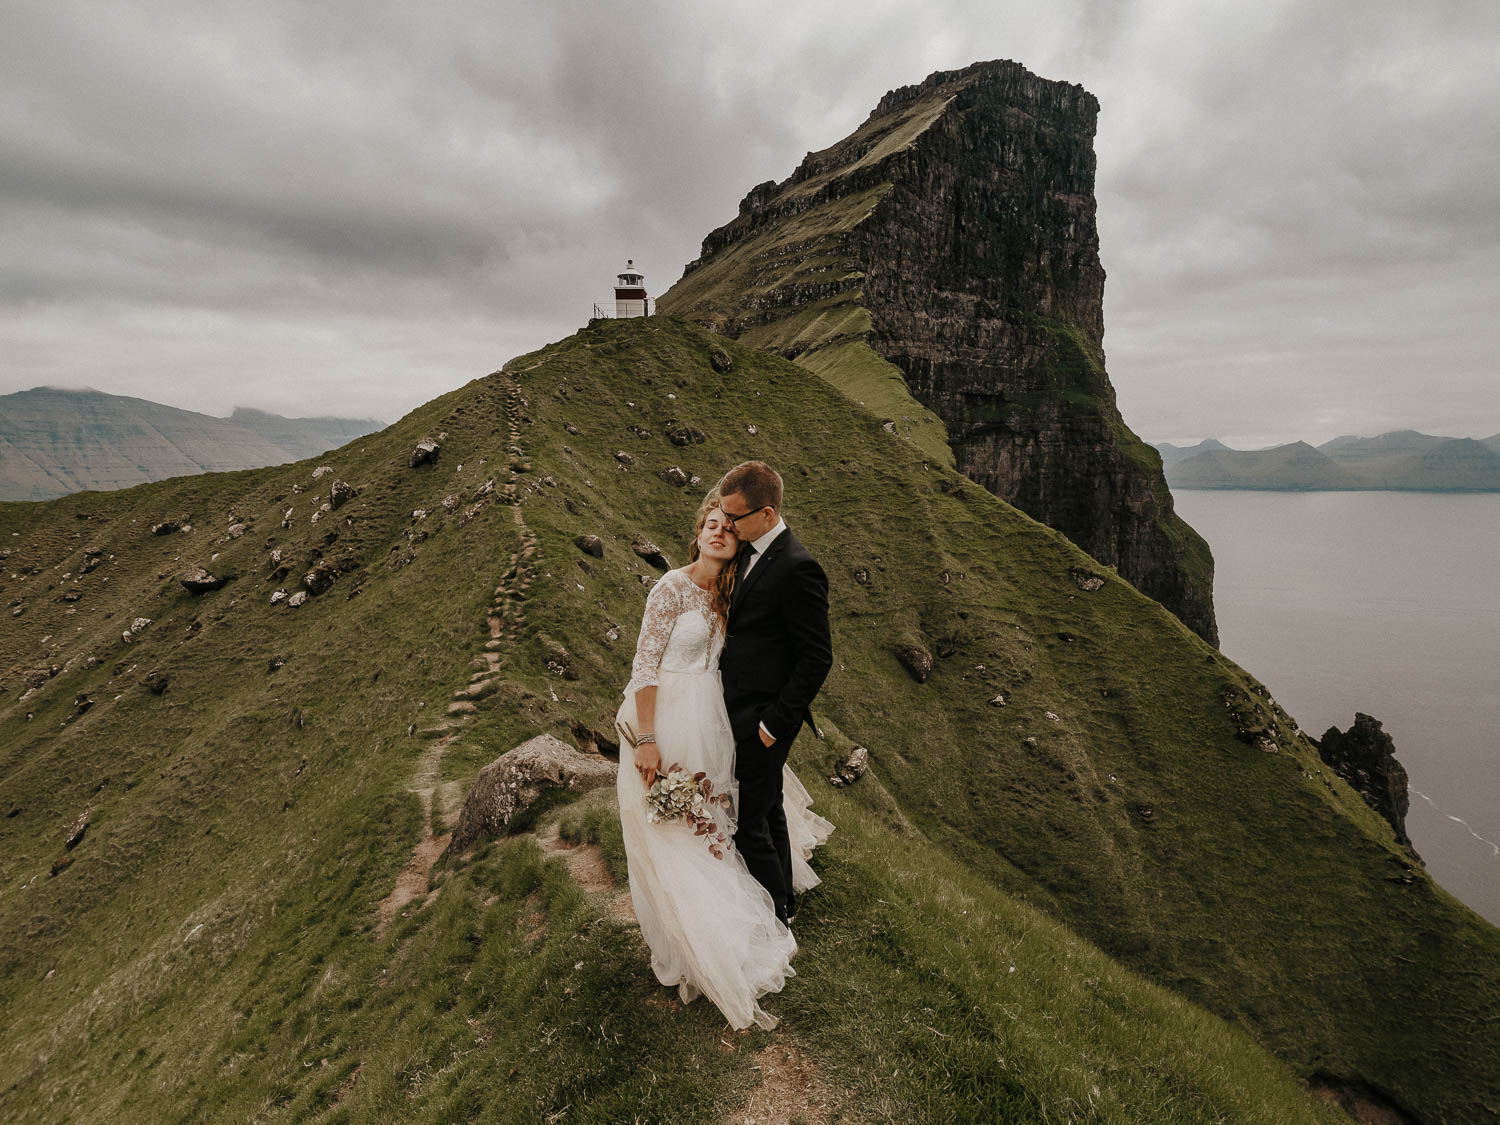 Faroe Islands Adventurous Wedding Shooting – Part 2